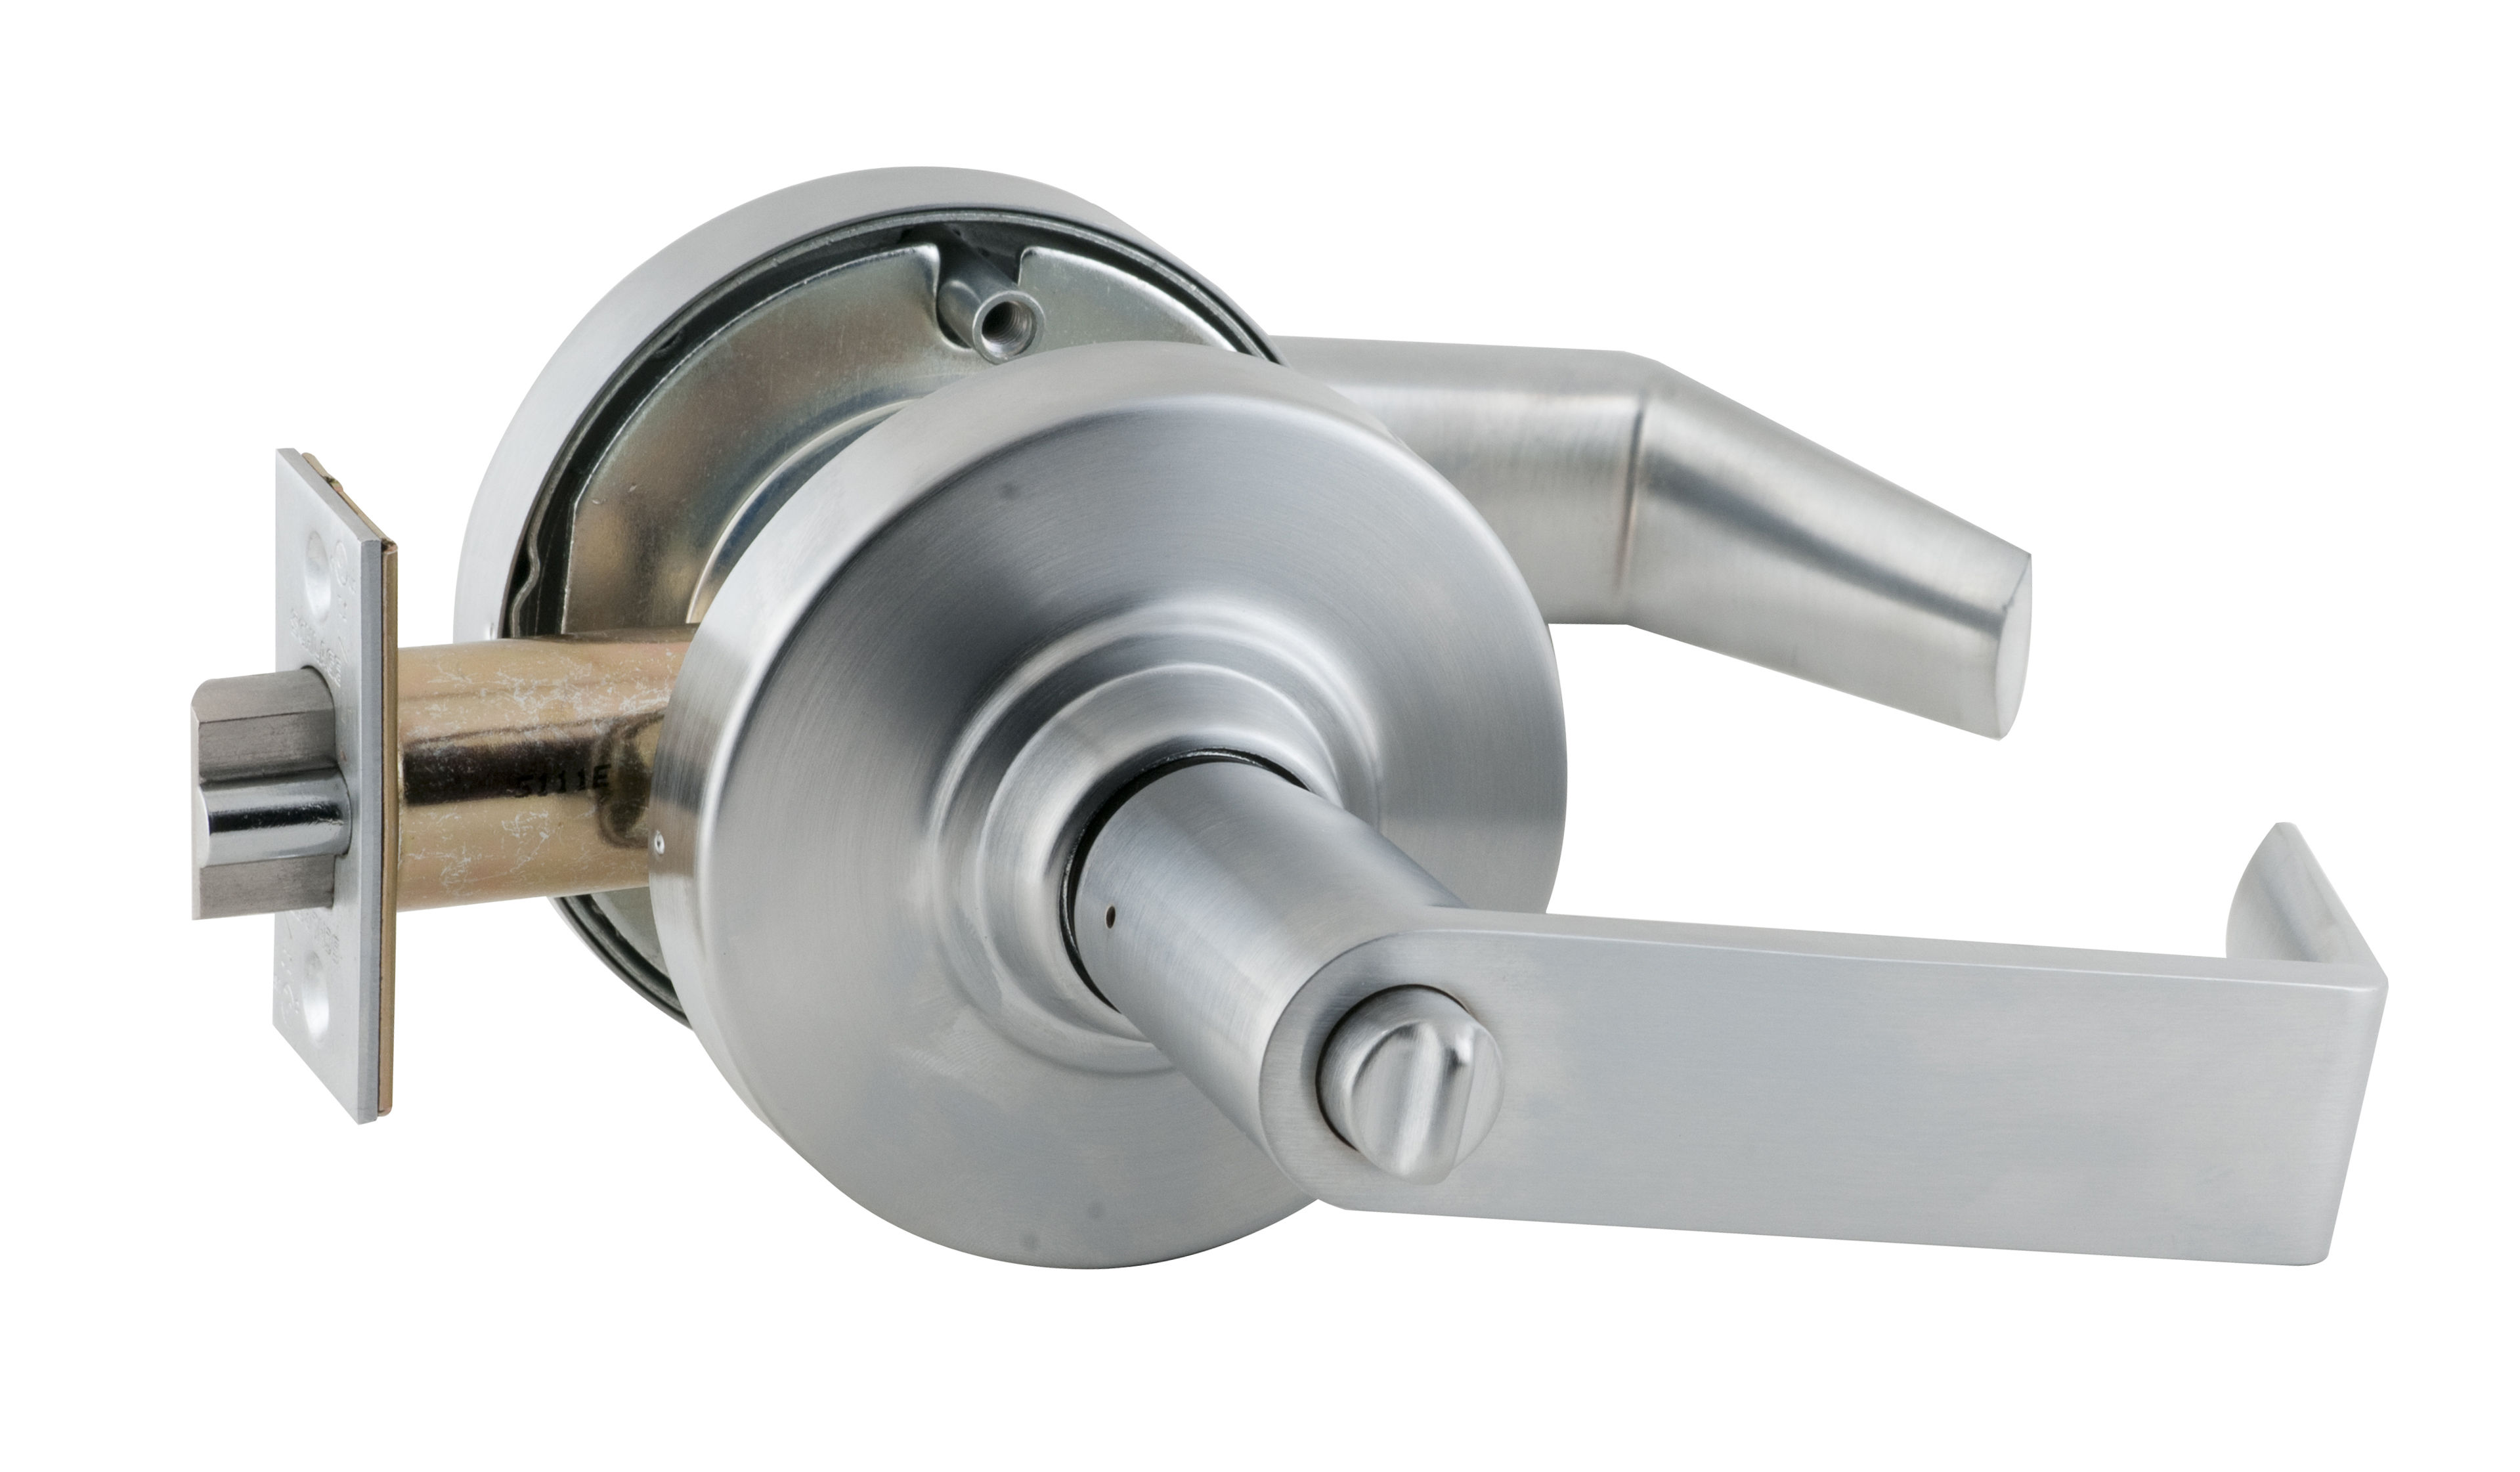 Schlage commercial ND53PDRHO619 ND Series Grade 1 Cylindrical Lock Rhodes Lever Design Entry Function Turn//Push-Button Locking Satin Nickel Finish